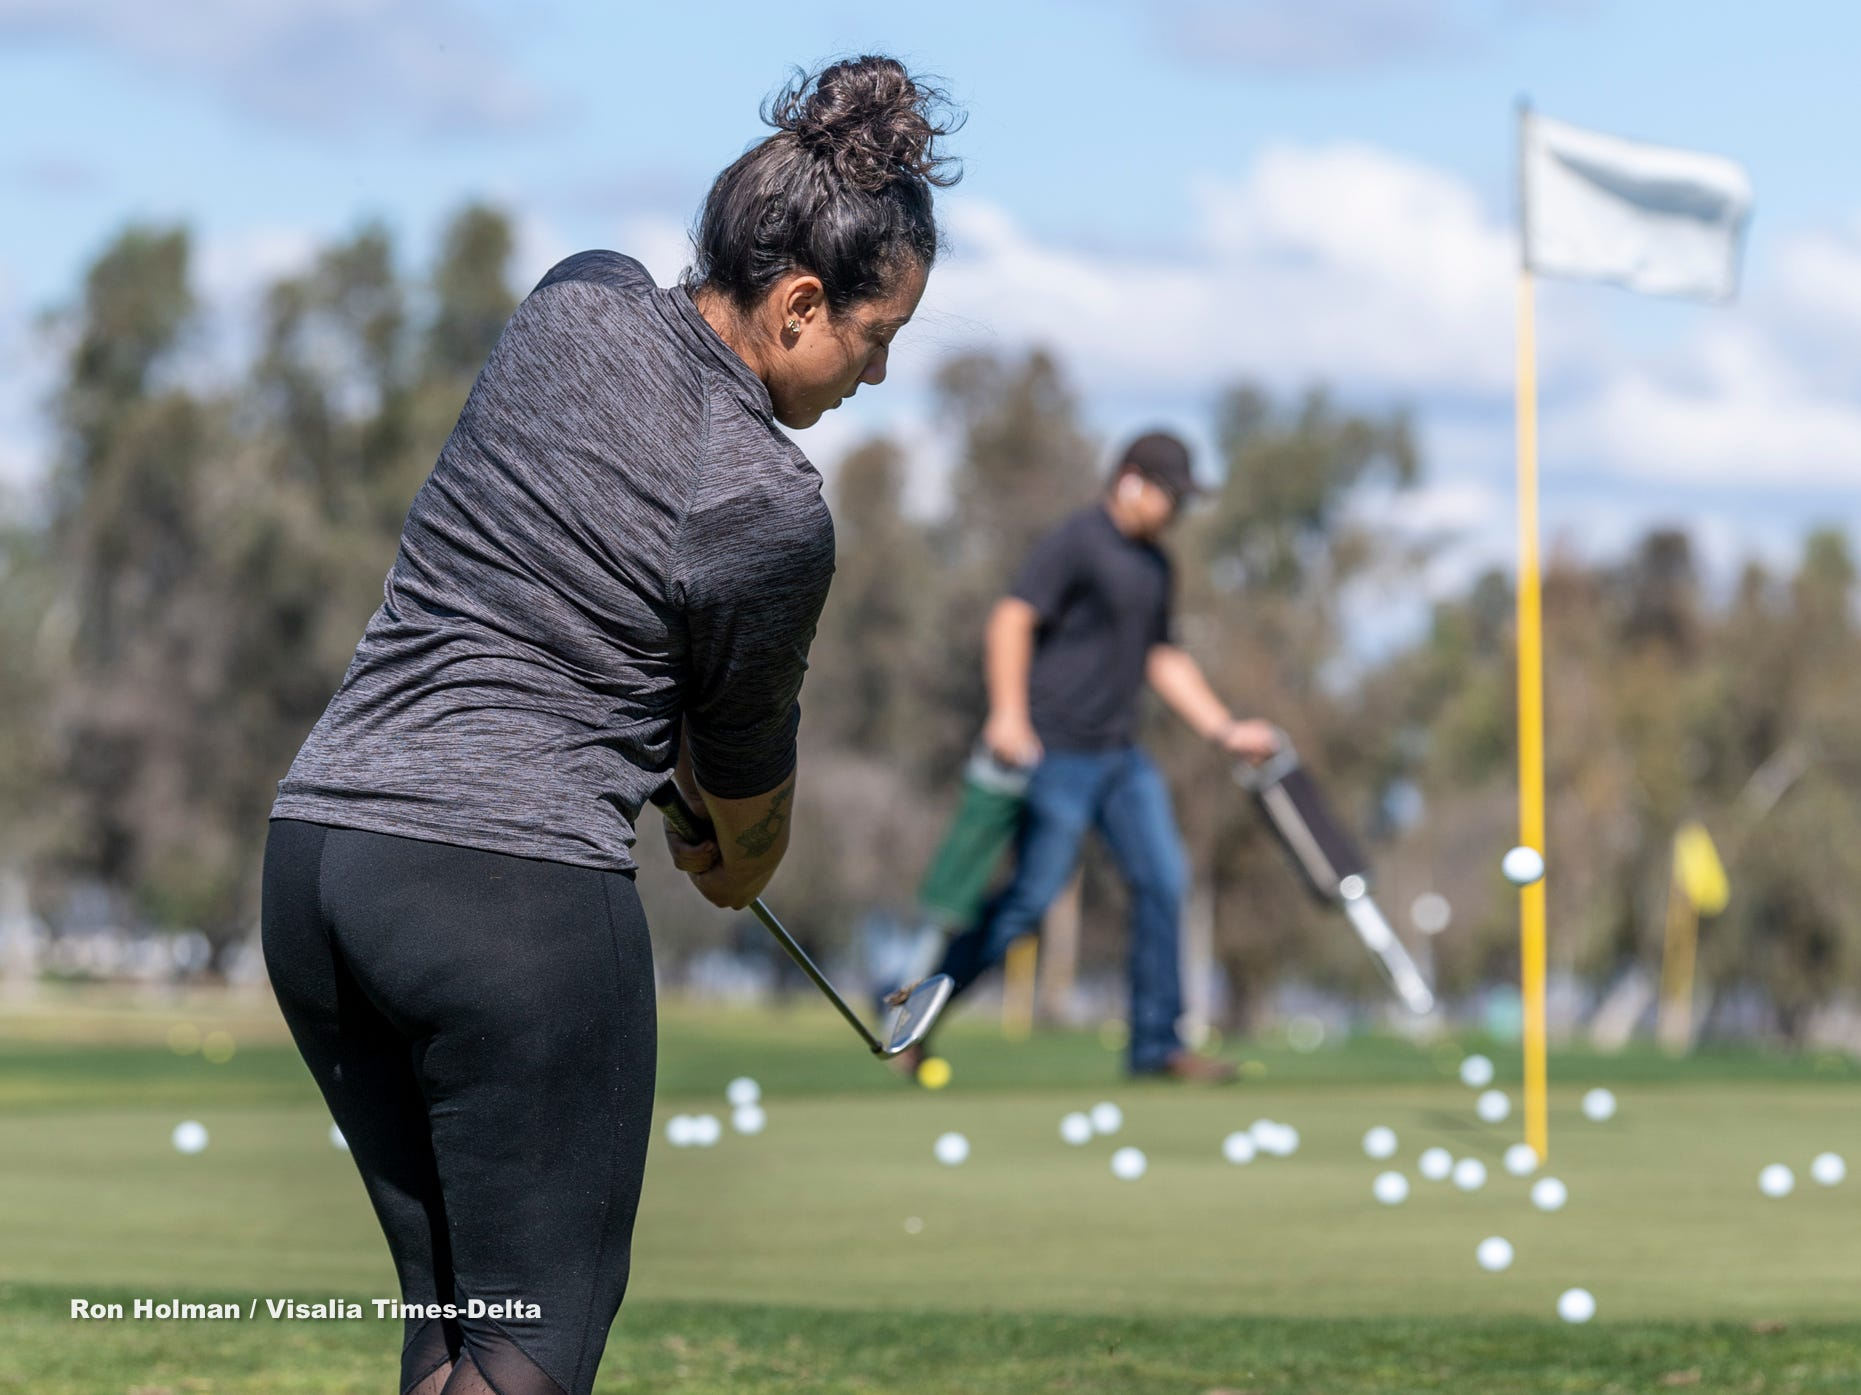 Mission Oak's Trynity King practices during a golf clinic for female golfers of all ages on Thursday, February 28, 2019. Organizers held the free event at the Tulare Golf Course to help grow the game of golf in the Central Valley.